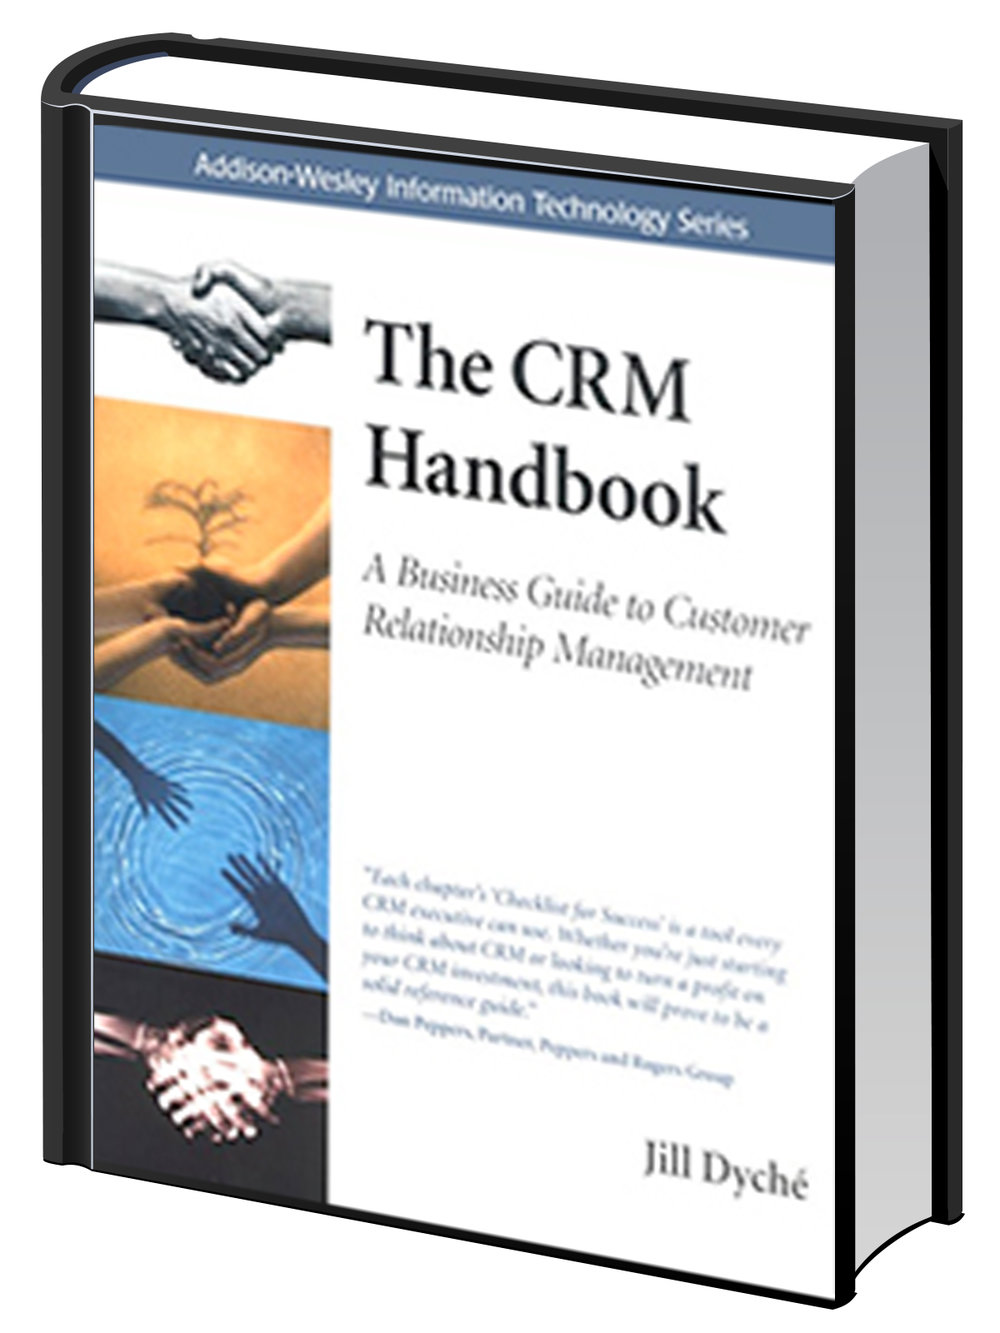 The CRM Handbook book cover